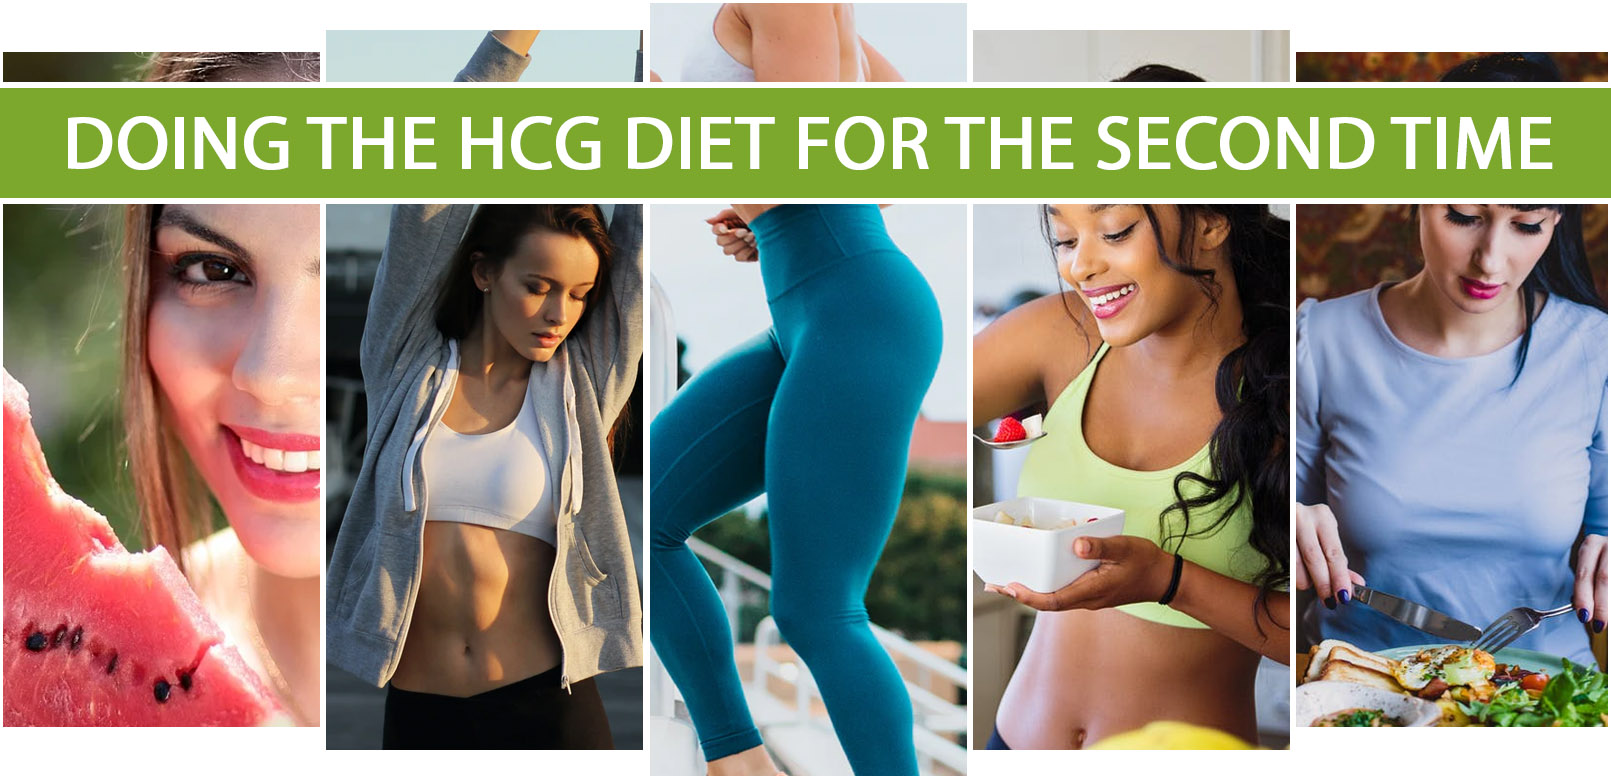 DOING THE HCG DIET FOR THE SECOND TIME